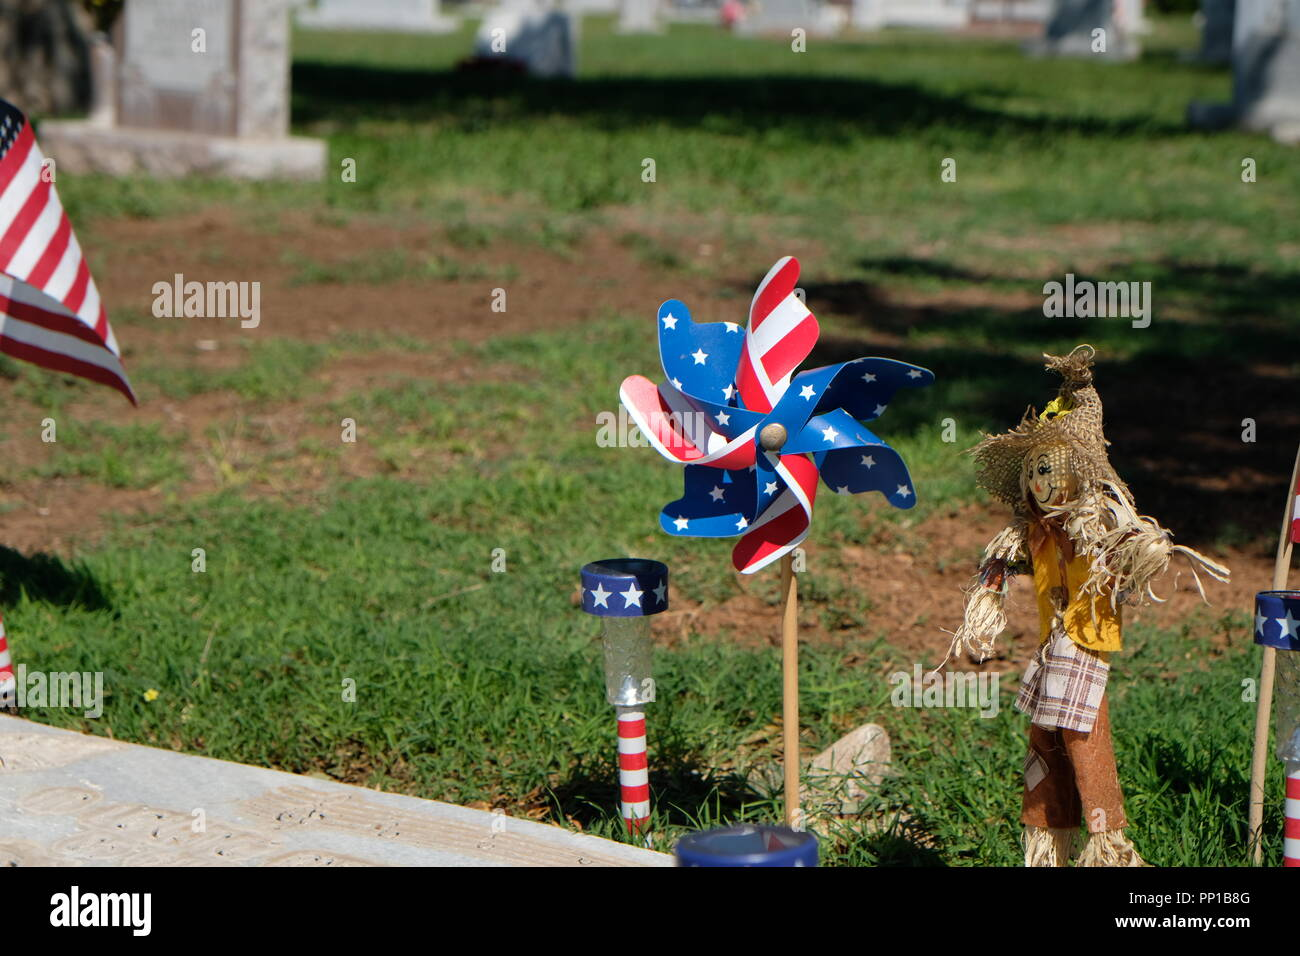 patriotic pinwheel and scarecrow on a burial plot in the city of